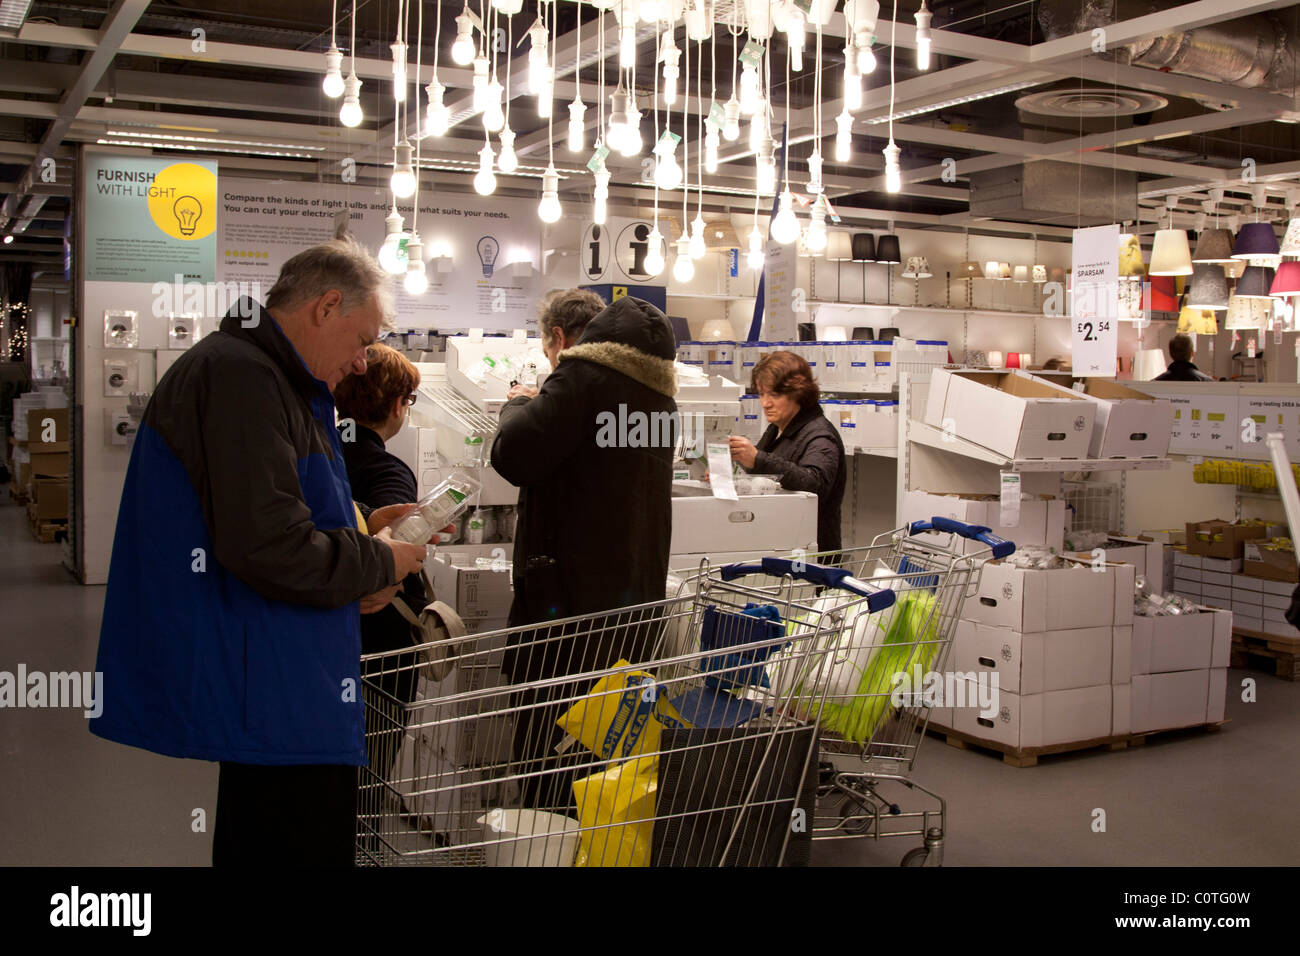 Lighting department ikea store wembley london stock for Ikea shops london